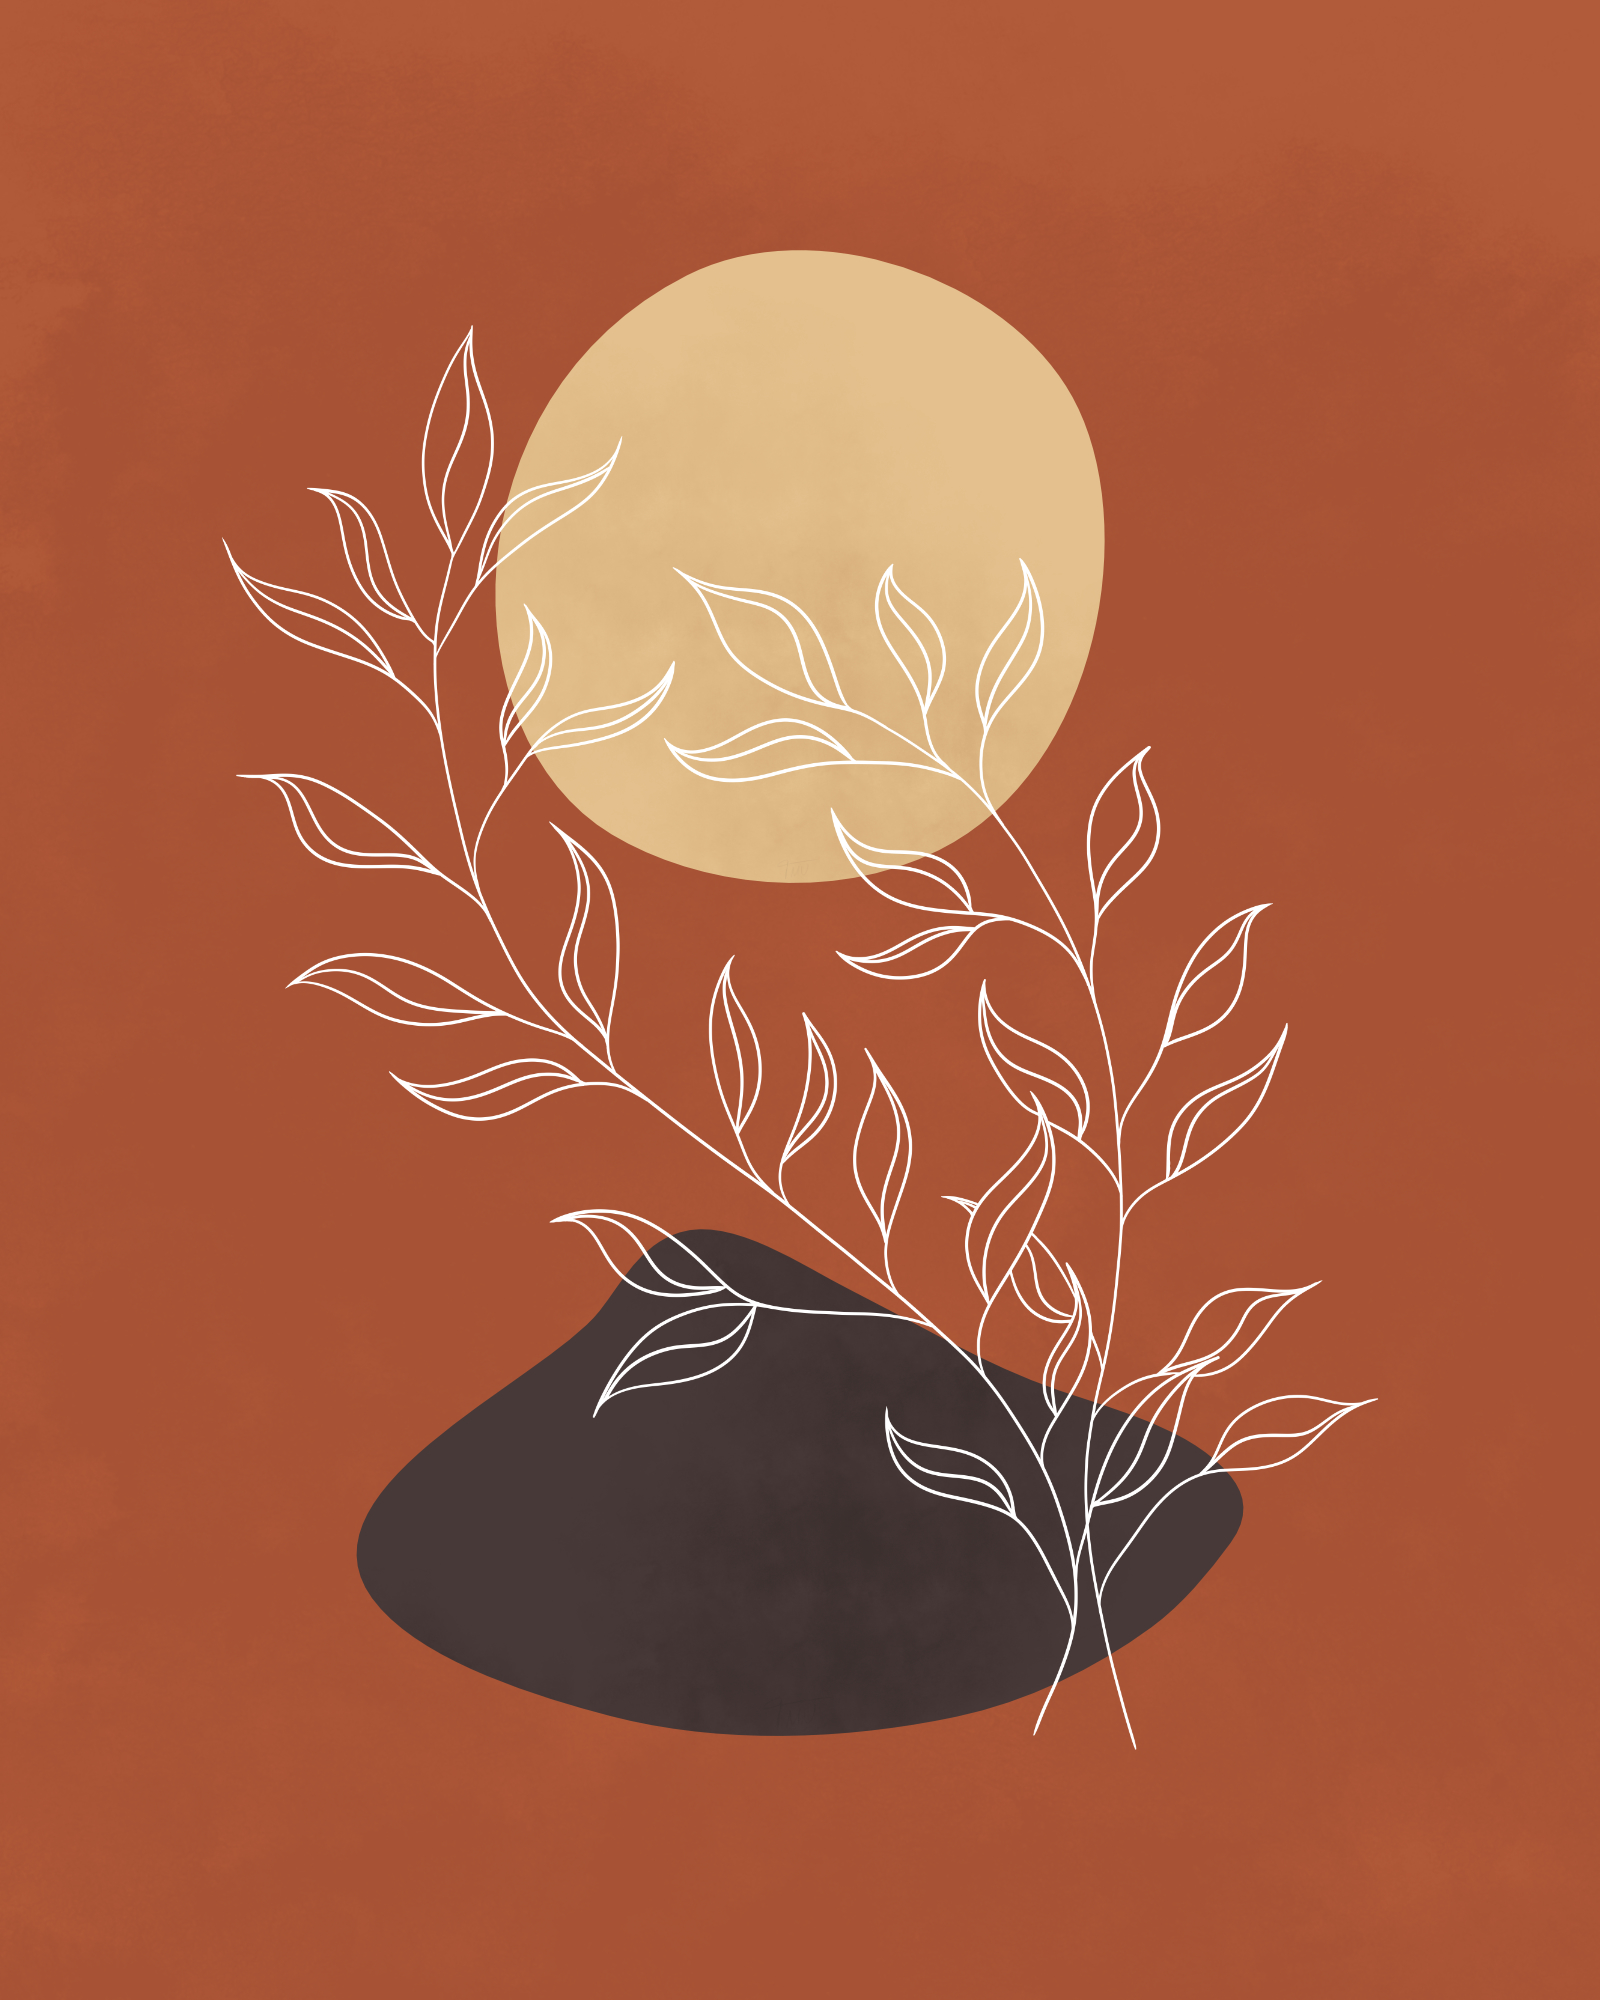 Minimalist lines and shapes landscape with a plant in autumn colors 17